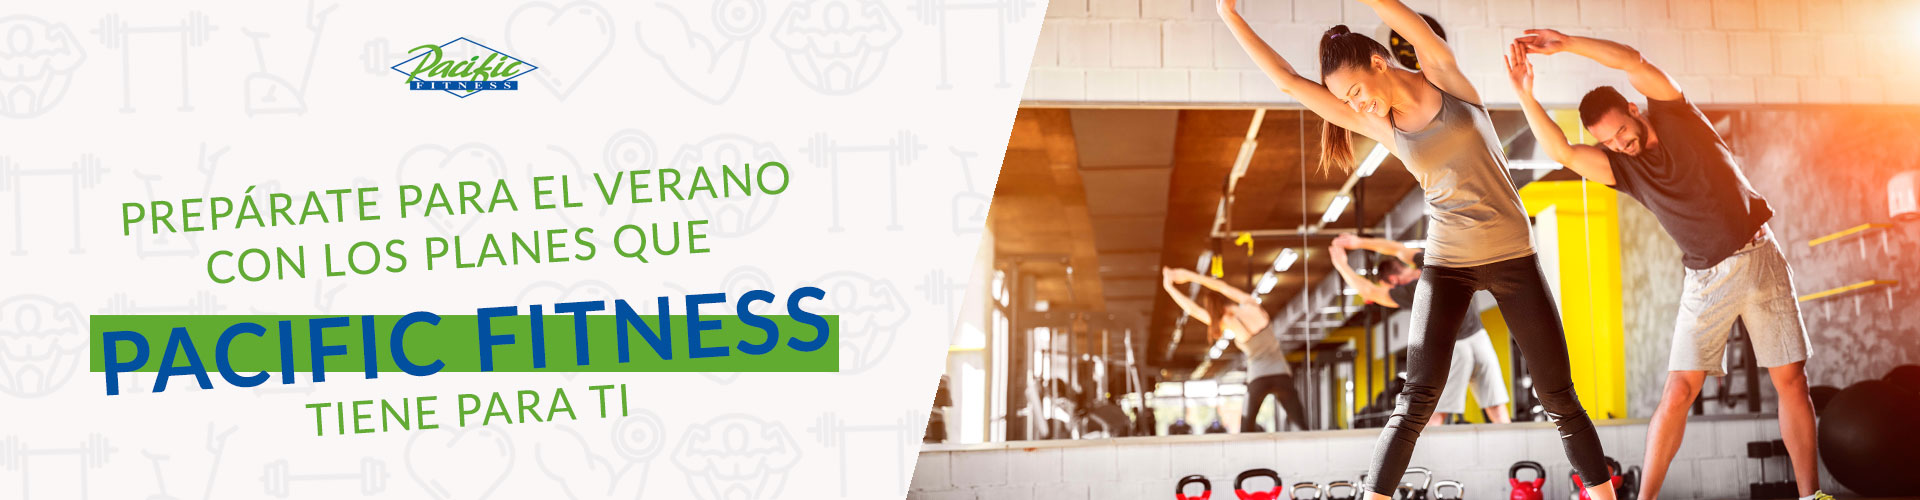 Club de Beneficios | Gimnasio Pacific Fitness